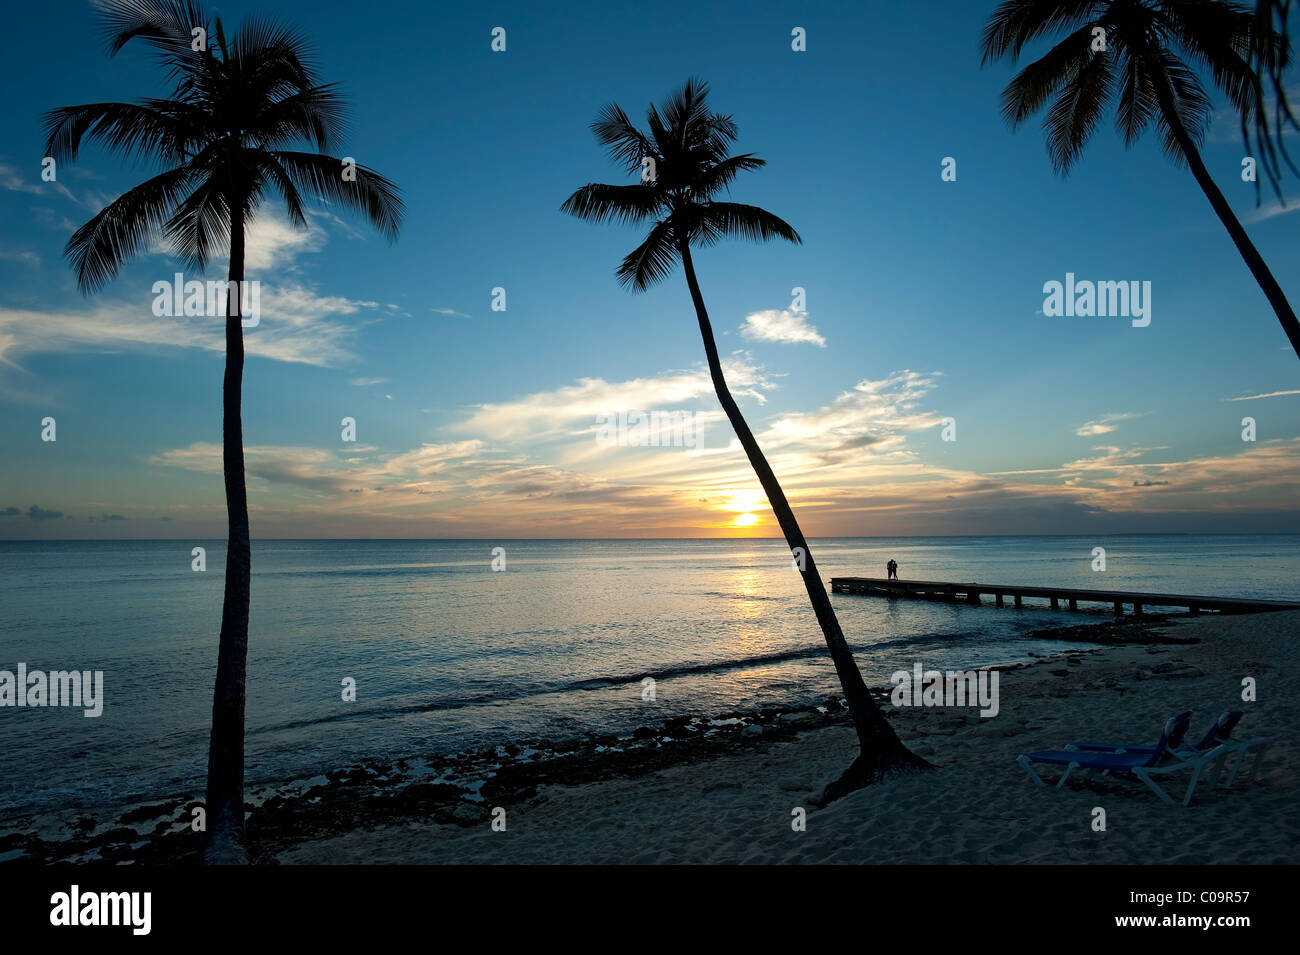 Sunset with palm trees and couple, Bayahibe Beach, Dominican Republic - Stock Image